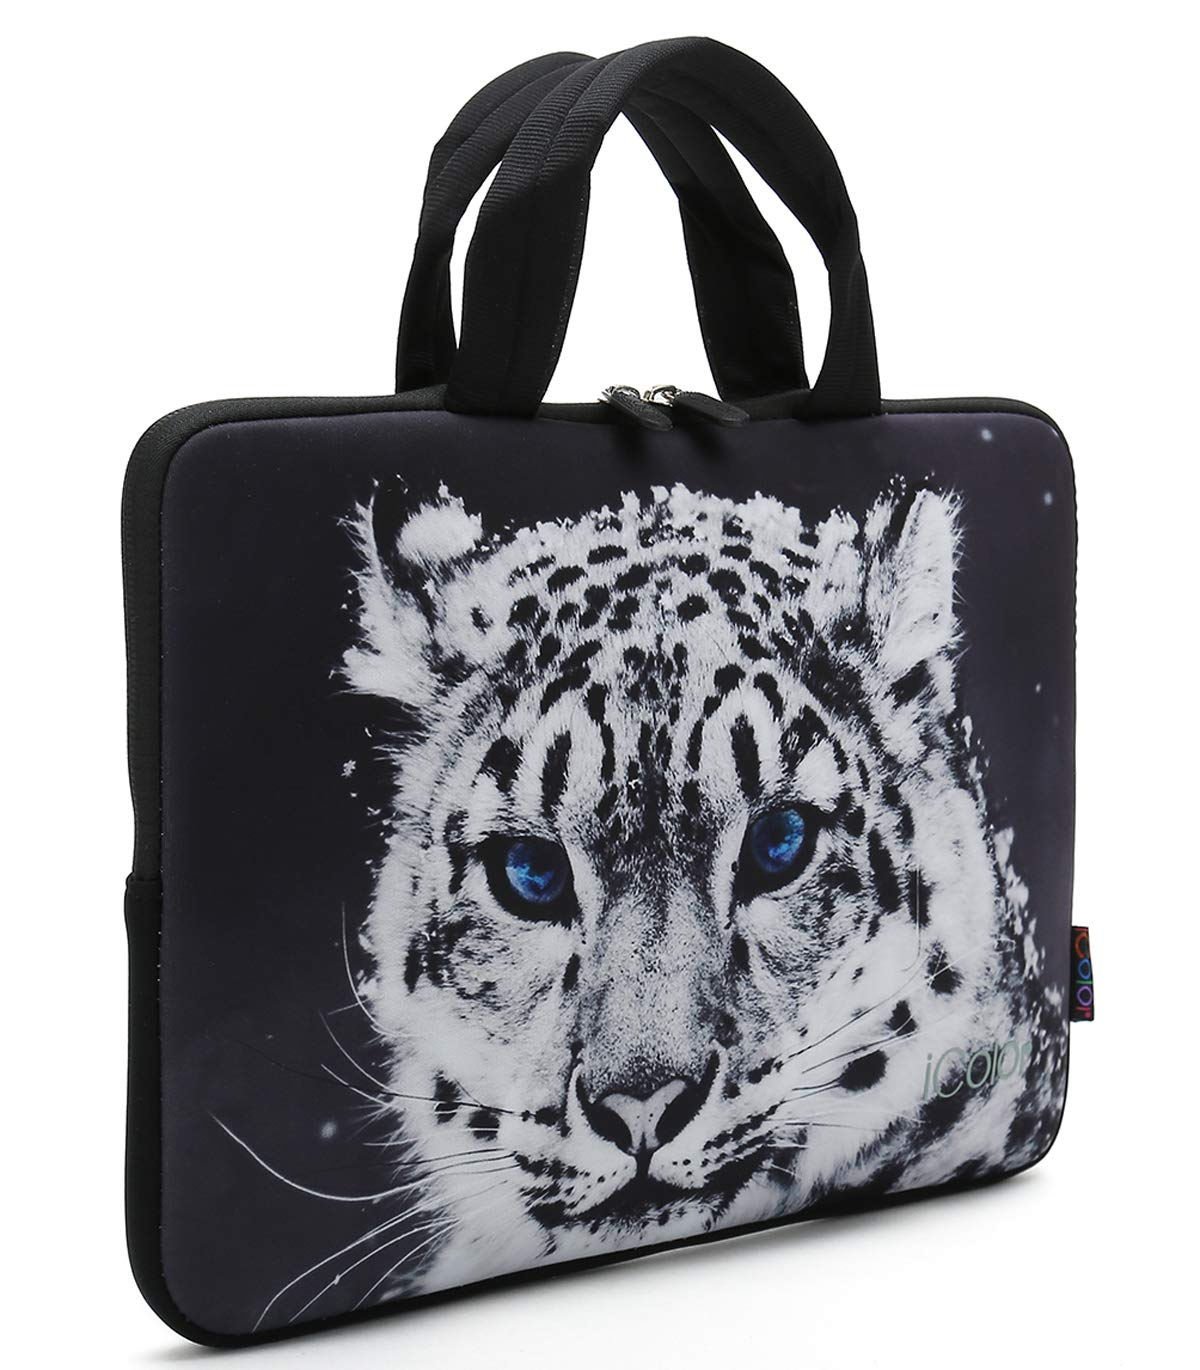 iColor Butterfly 11.6 12 Inch Laptop Case Protective Sleeve Bag Briefcase with Handle IHB12-005